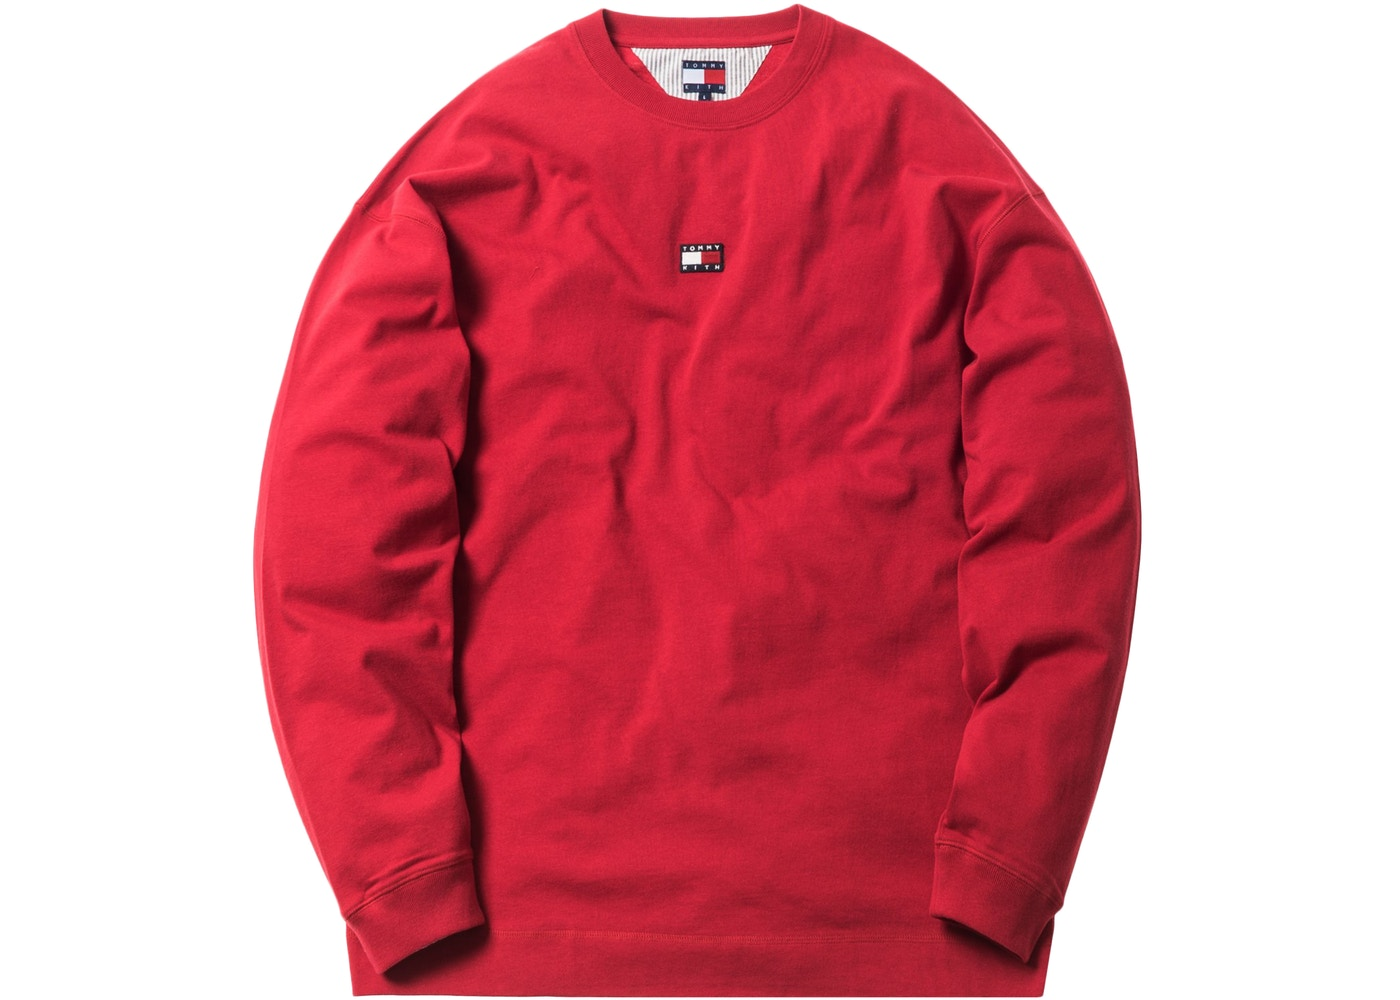 bade26fc Kith x Tommy Hilfiger Long Sleeve Tee Red - FW18